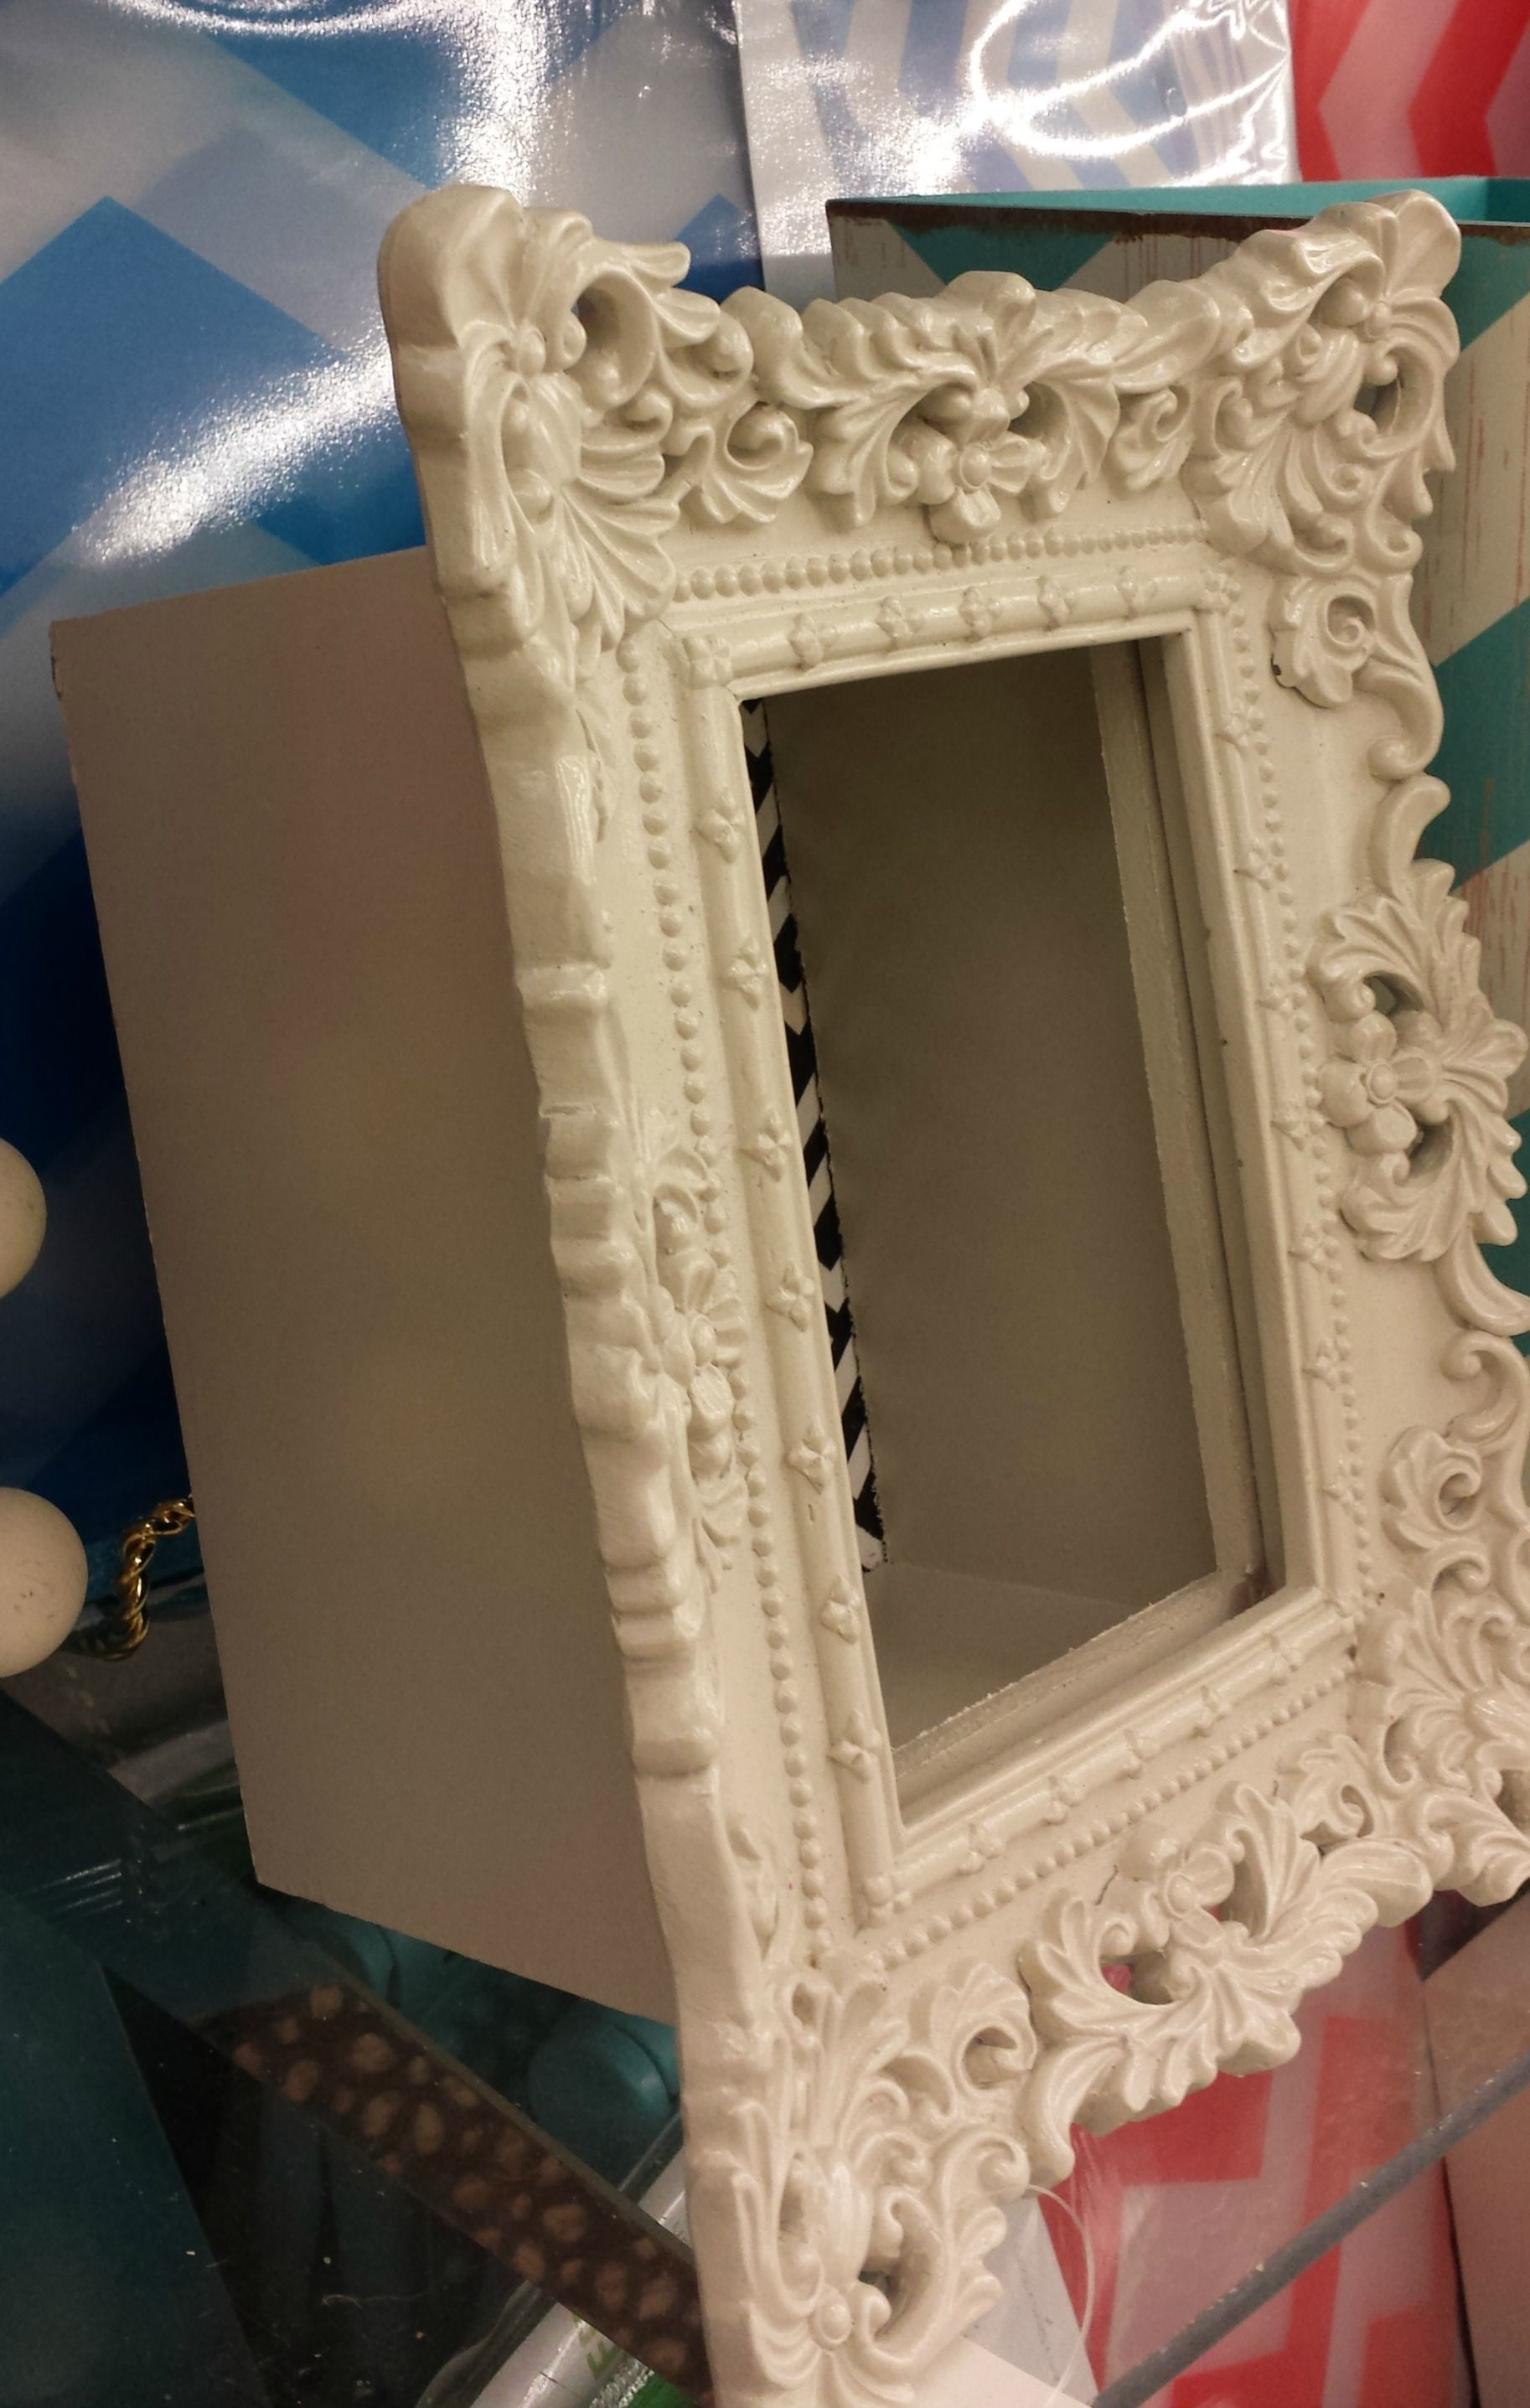 Attach An Ornate Frame To A Wooden Box To Make